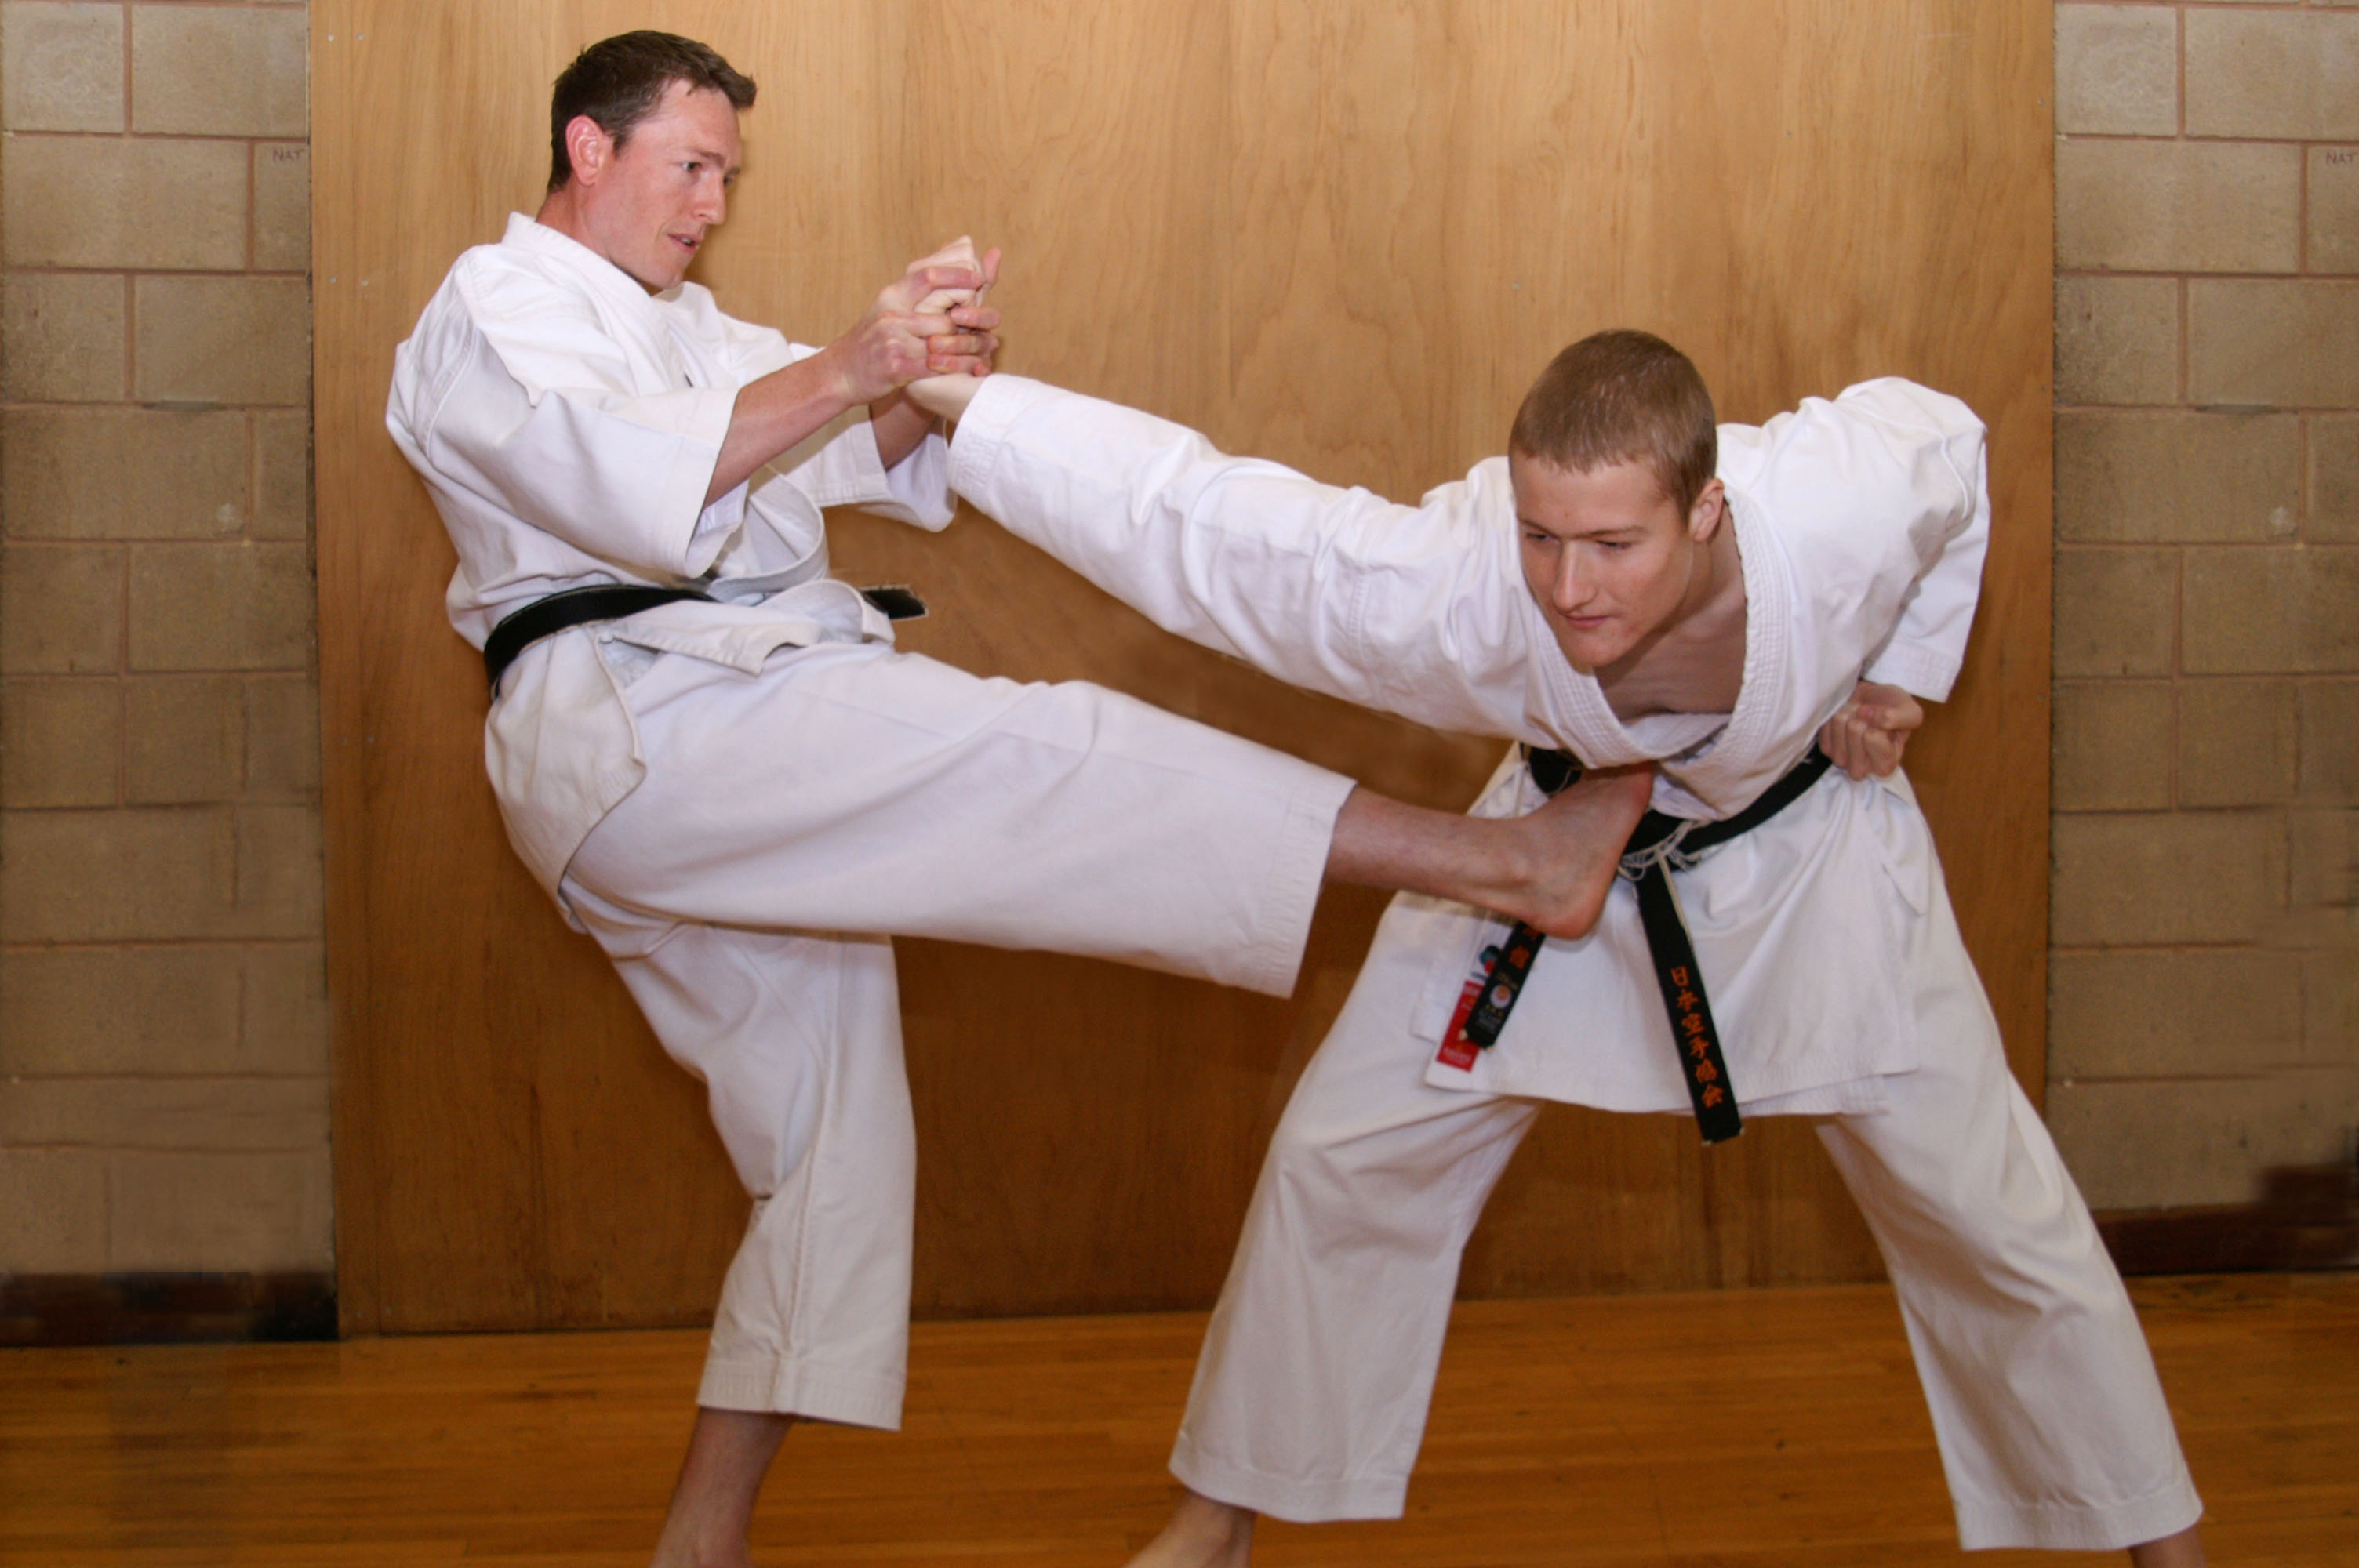 disadvantages of karate Here are 10 reasons to study and train mixed martial arts (mma) 1) training mixed martial arts (mma) will build confidence in you  when you know how to fight your mind is a little calmer, a little freer, and a little more relaxed.